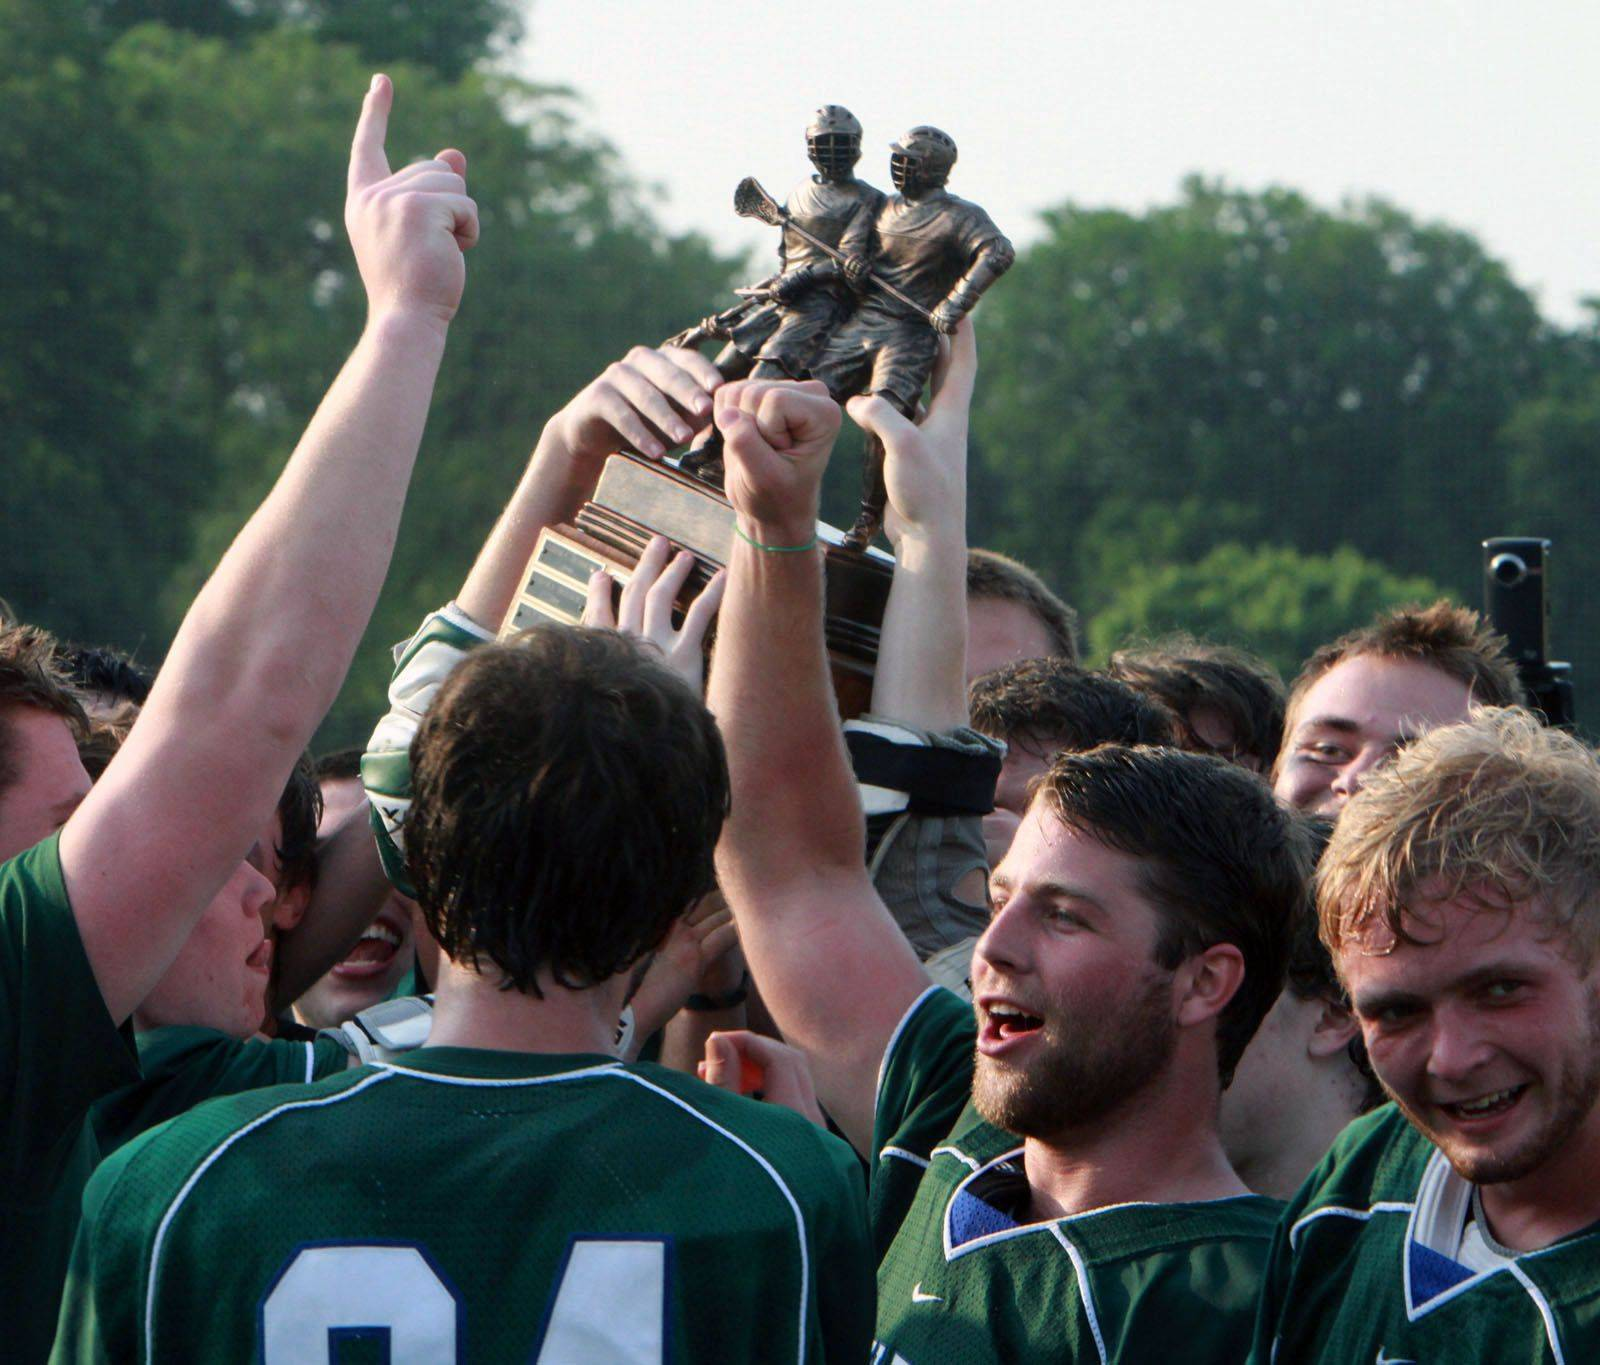 New Trier celebrates with the in IHSLA state lacrose championship trophy after winning over Loyola Academy in Oak Park on Saturday.